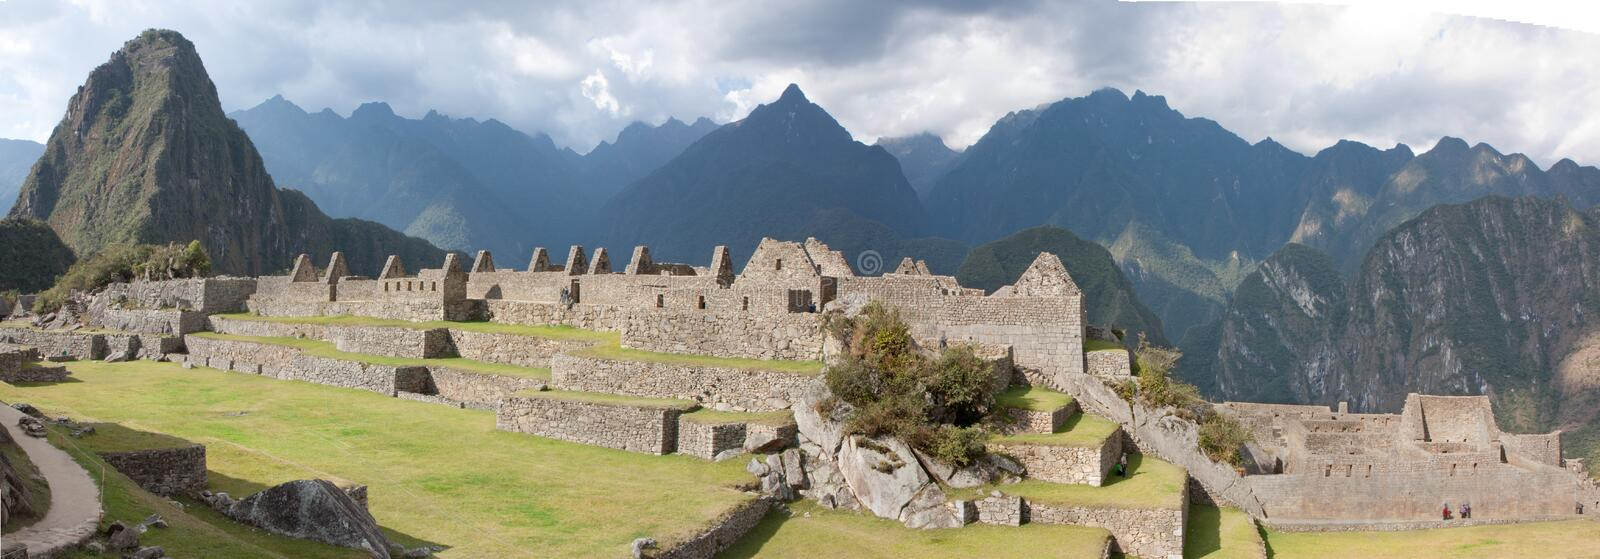 Download Machu Picchu, Eastern Urban Sector Royalty Free Stock Photography - Image: 33091787